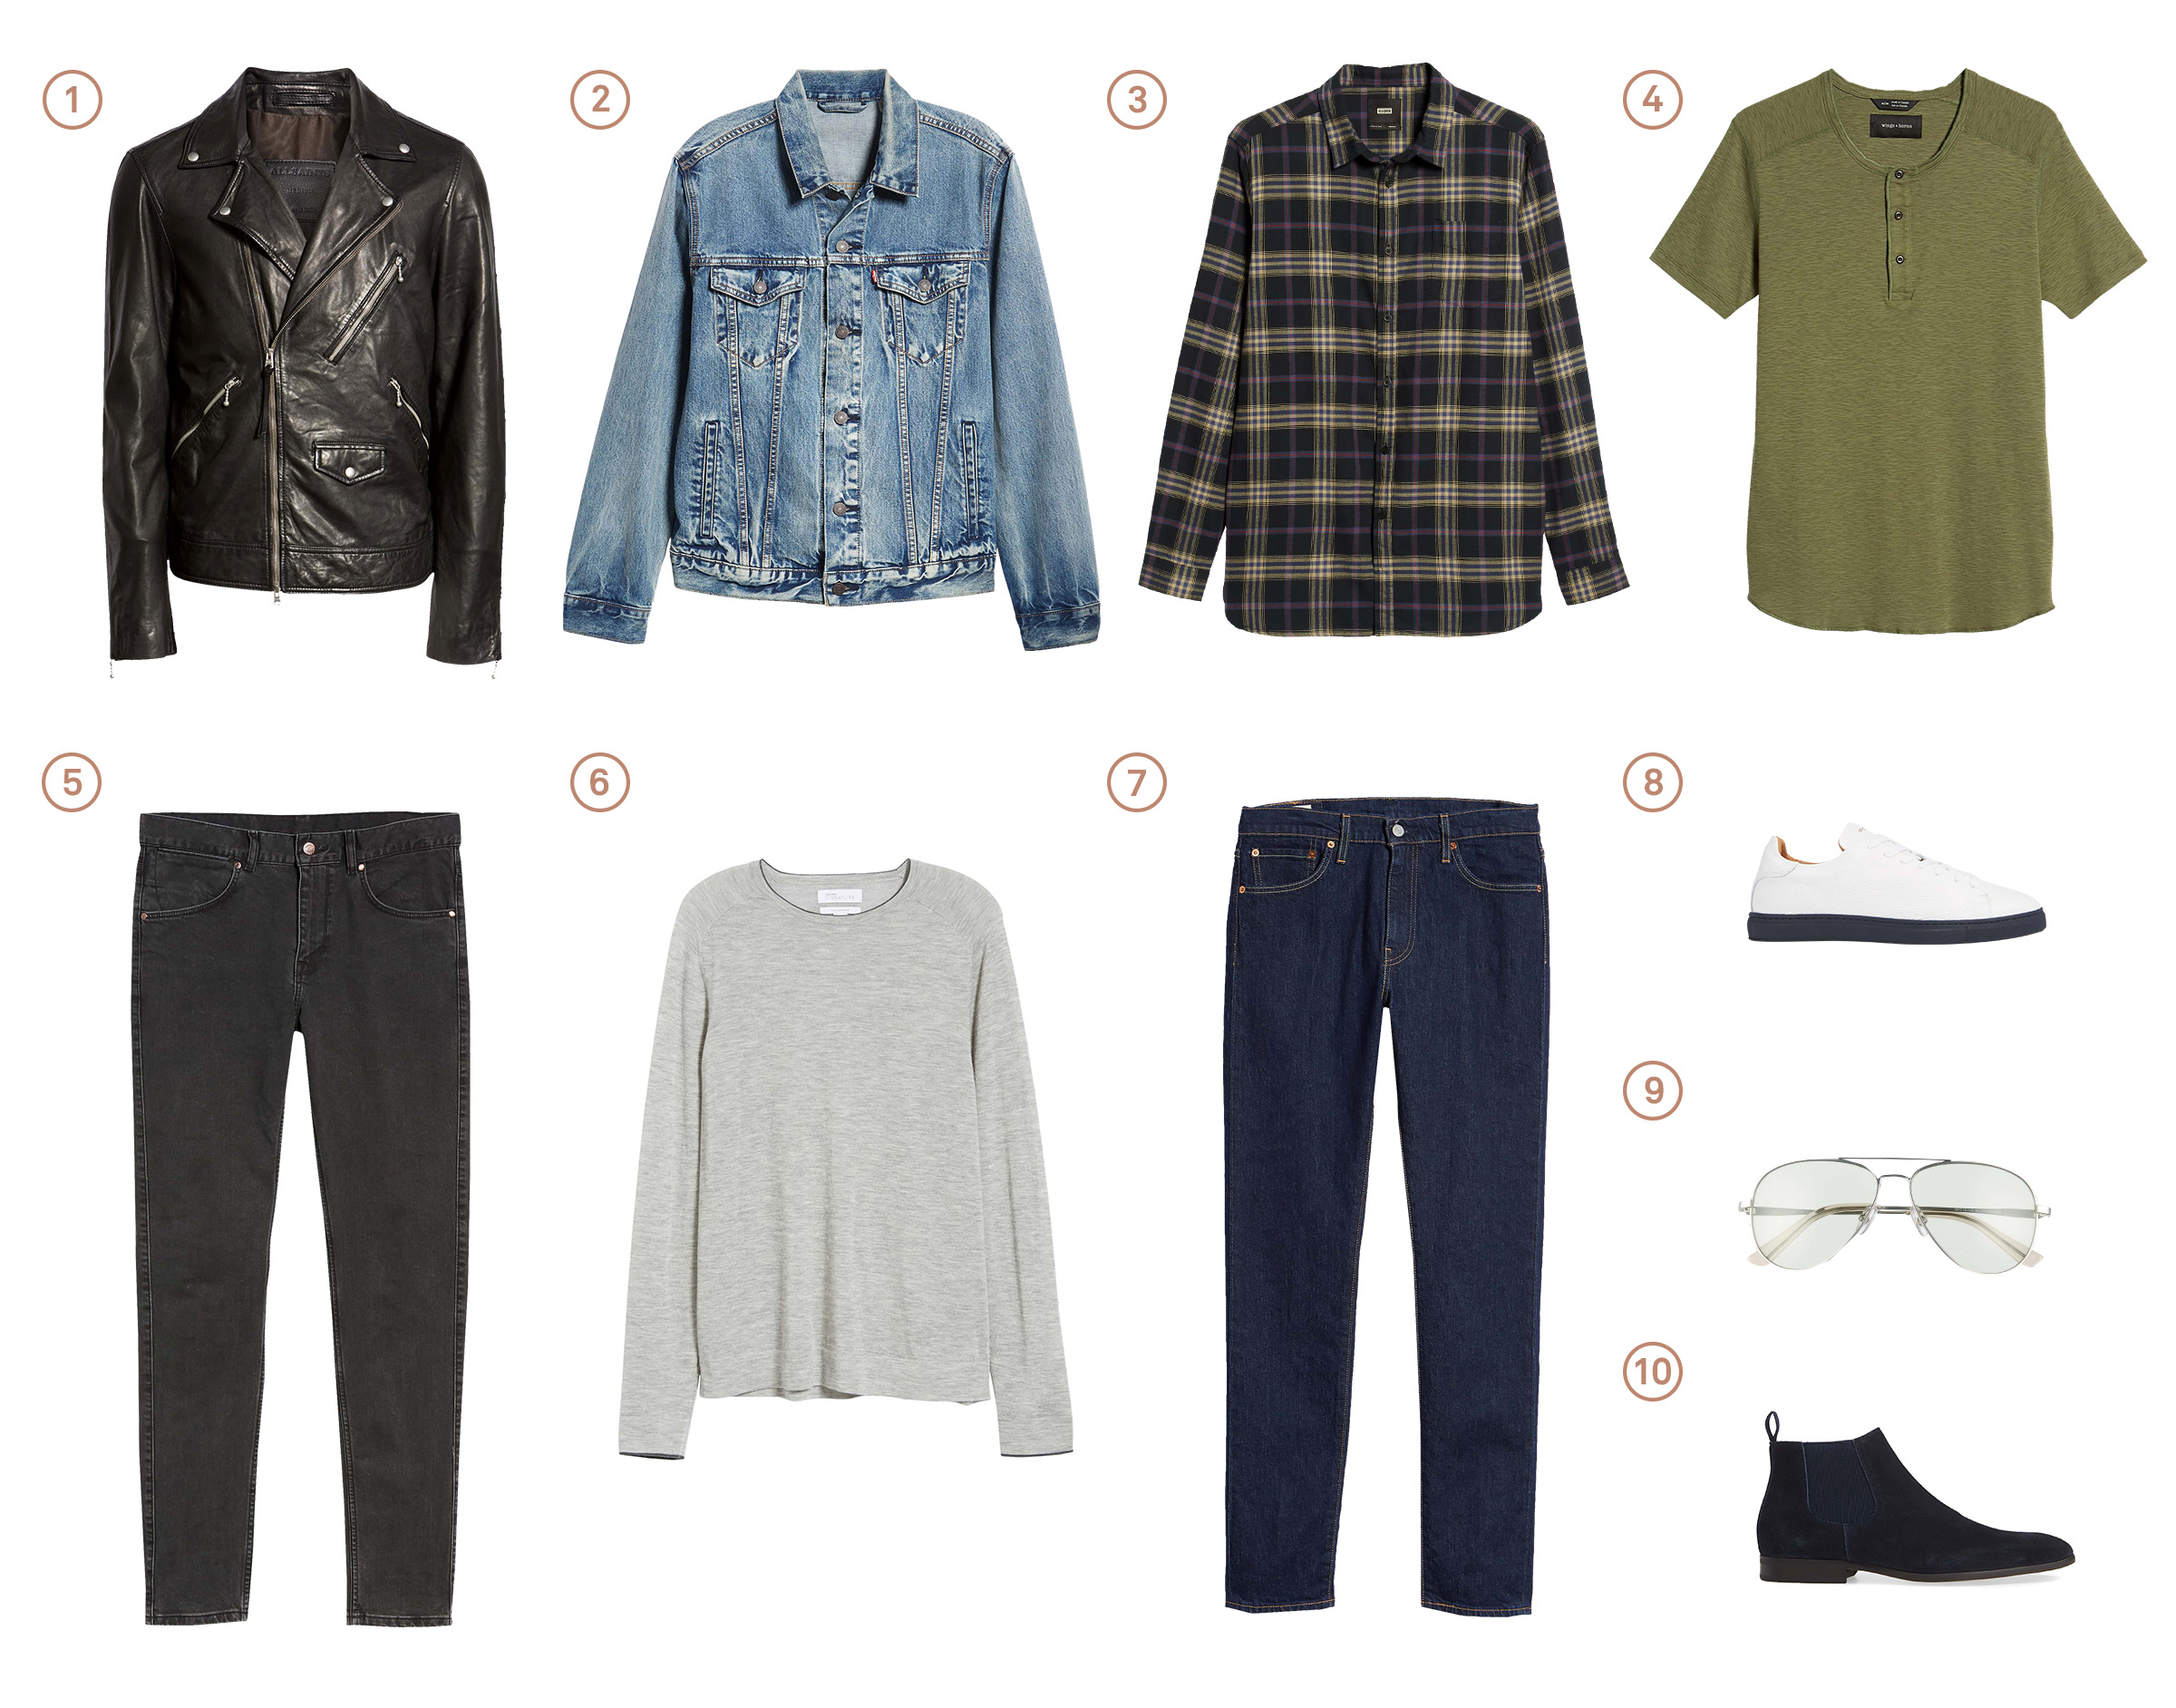 Men's capsule wardrobe with ten items of classic menswear.